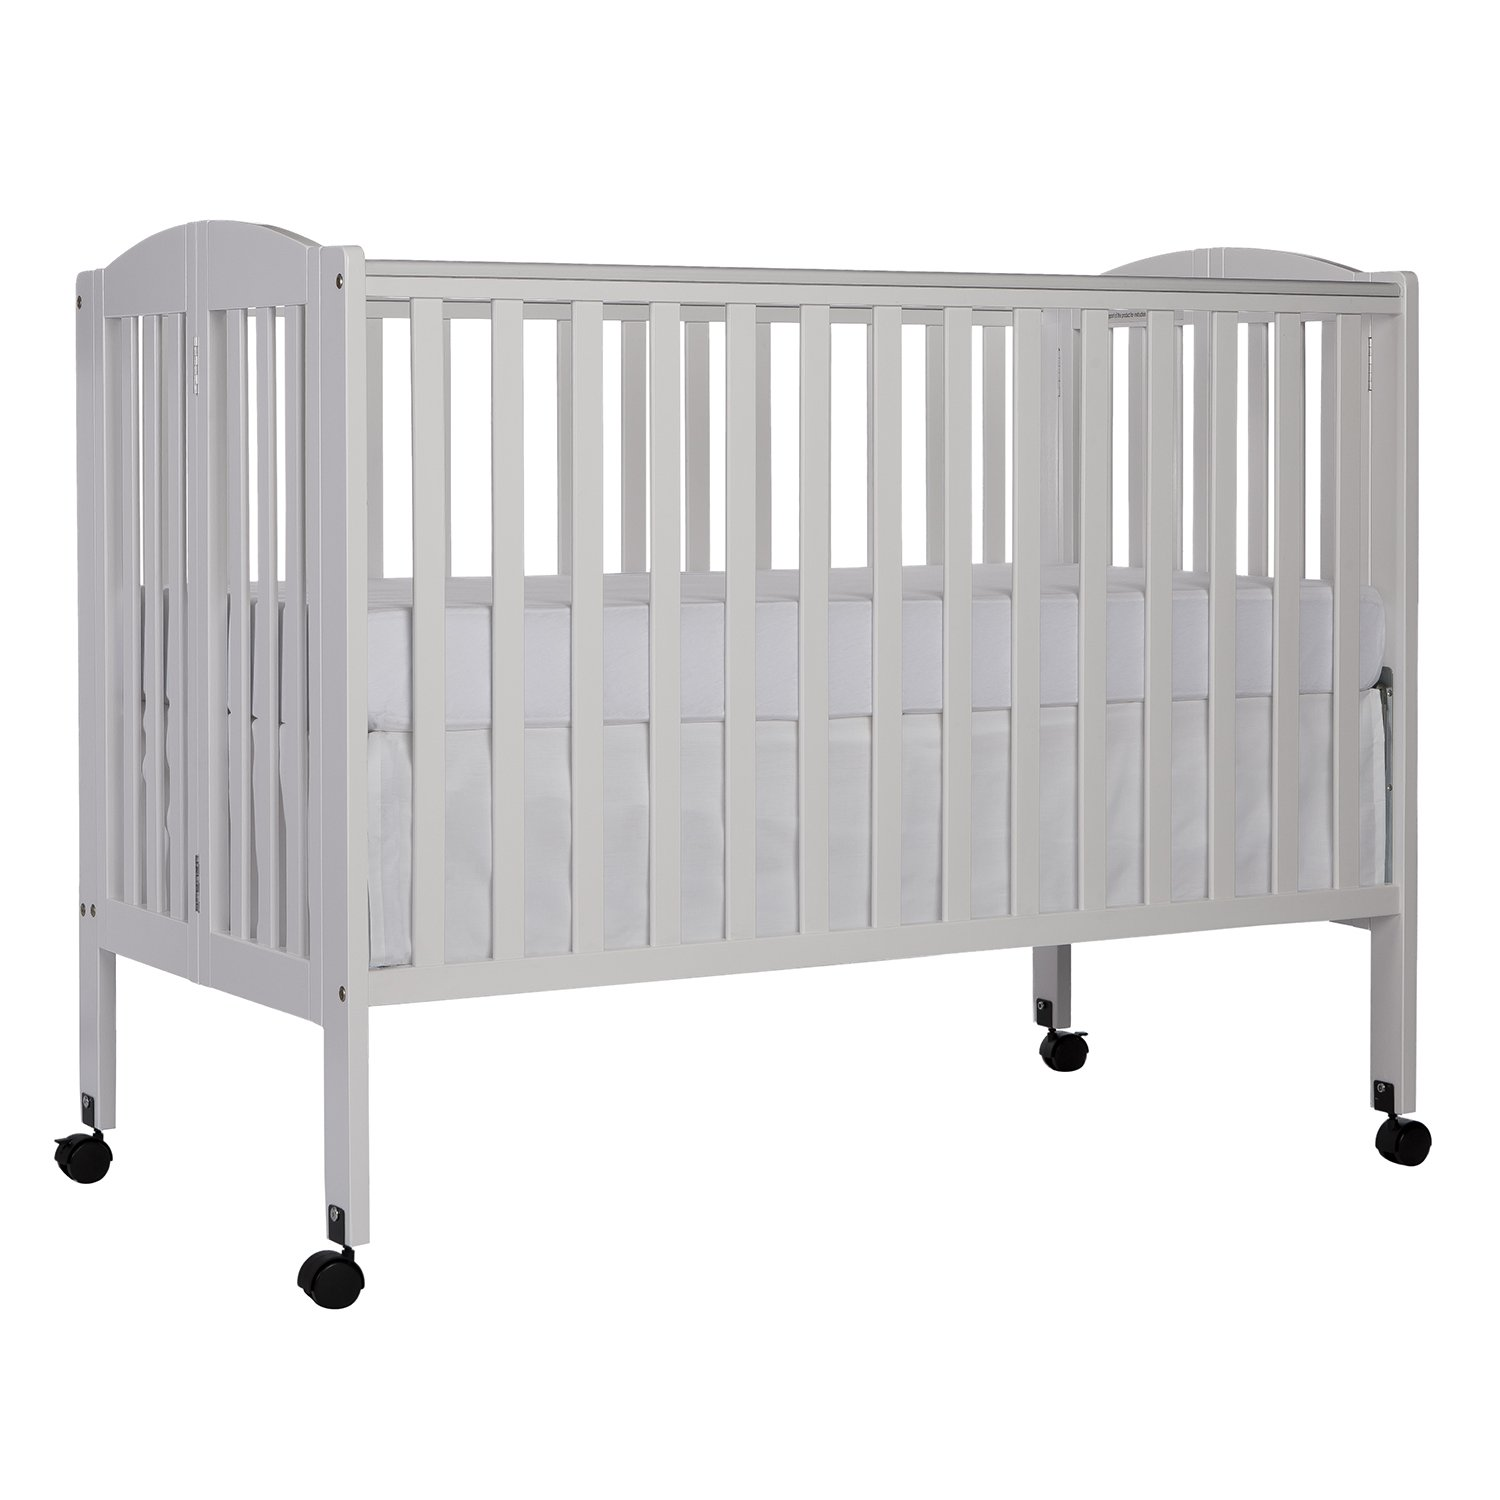 the larger crib what l size we view ideas mattress is bring standard dimensions baby